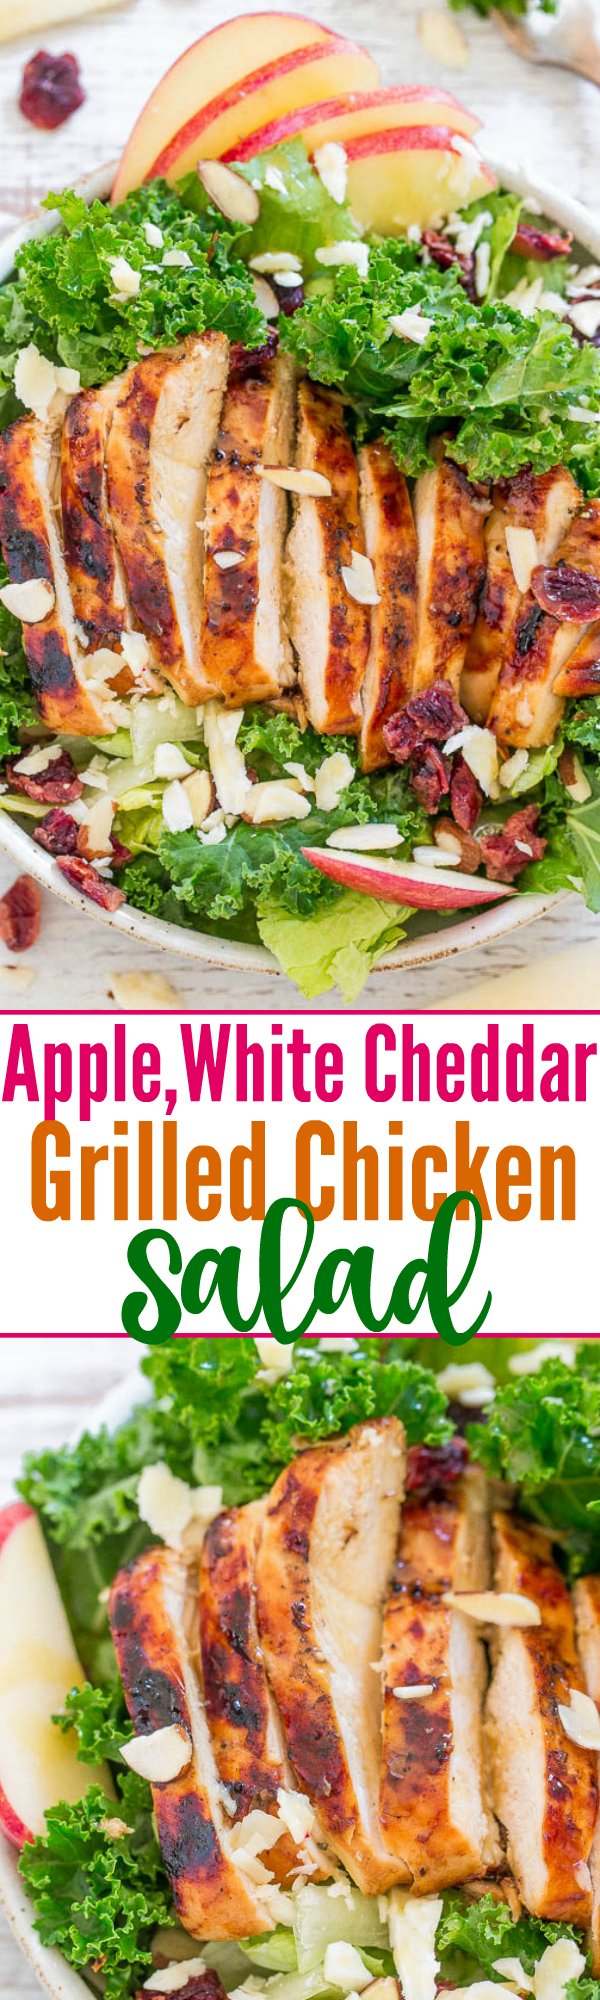 Two picture collage of apple, white cheddar and grilled chicken salad with graphic